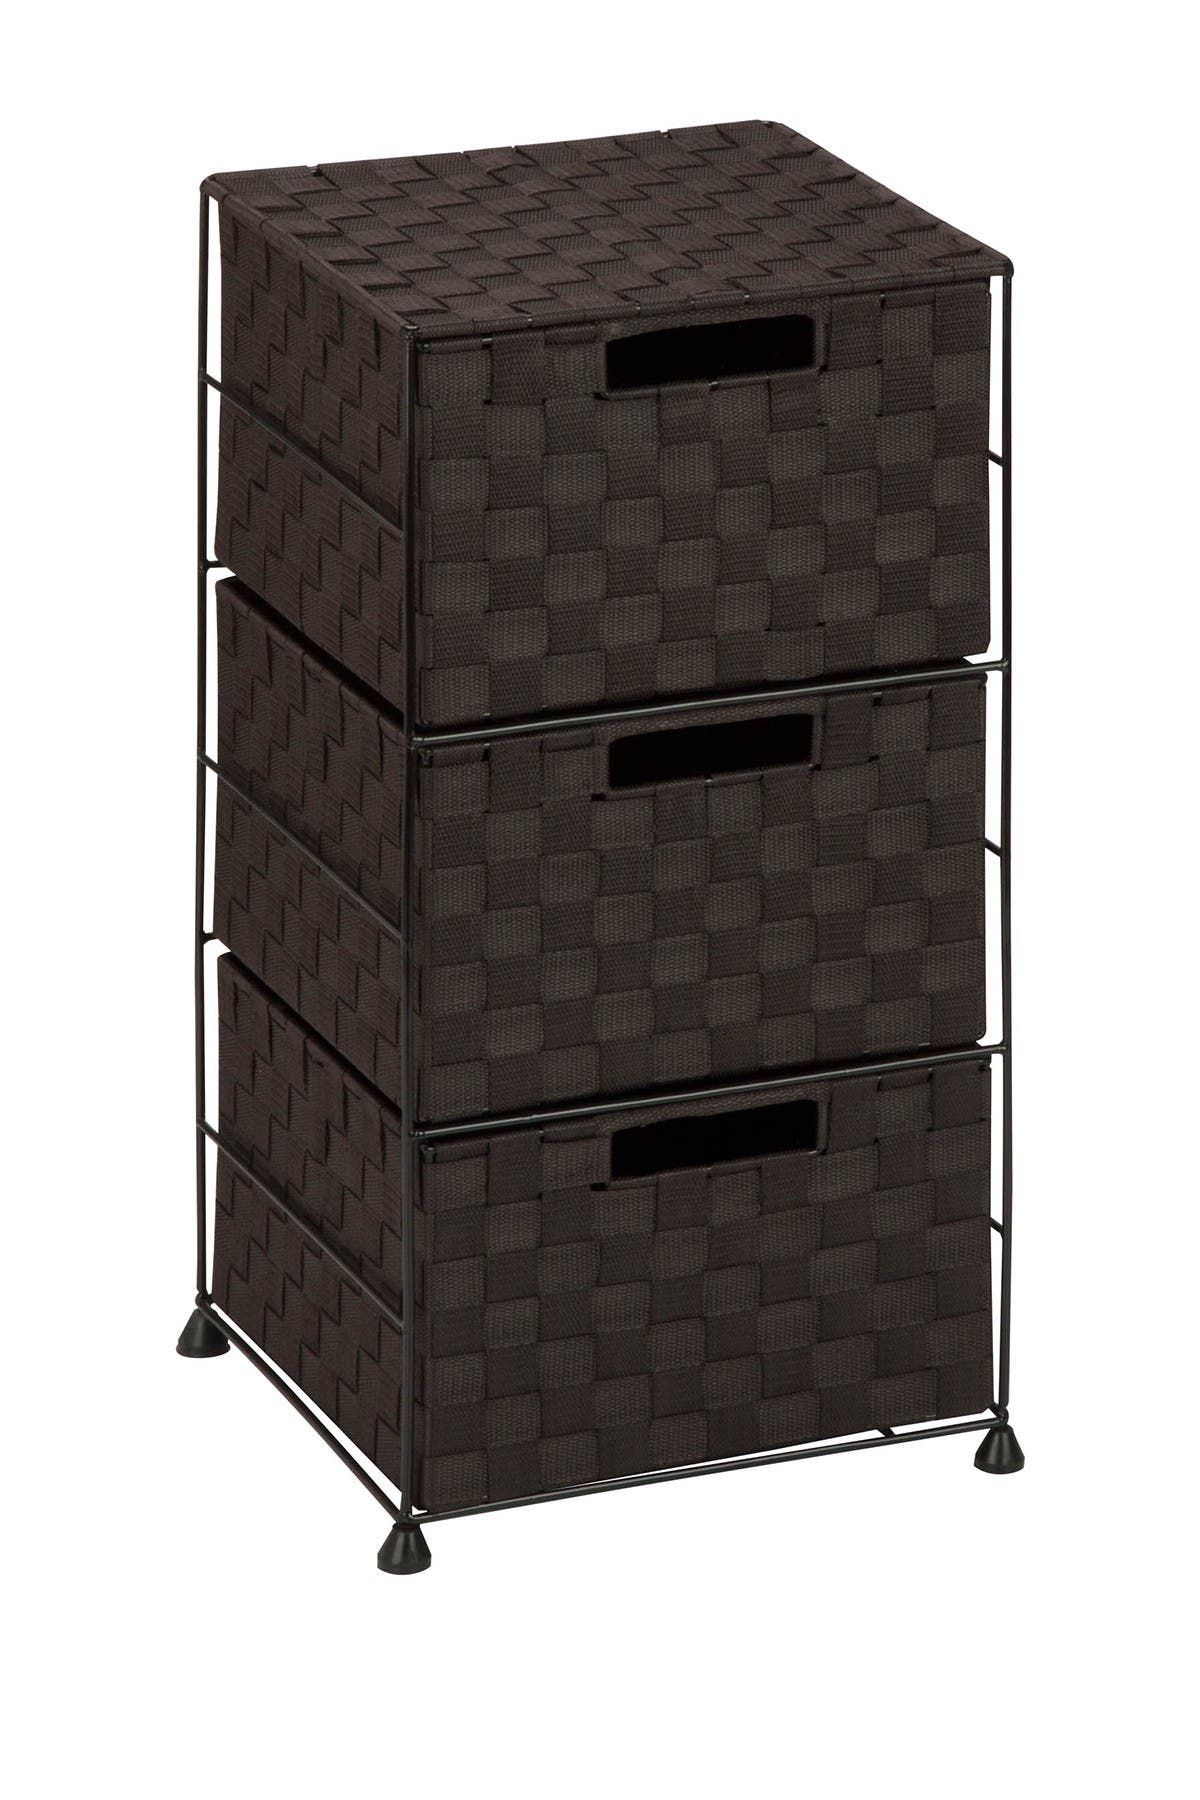 Image of Honey-Can-Do Espresso 3 Drawer Chest